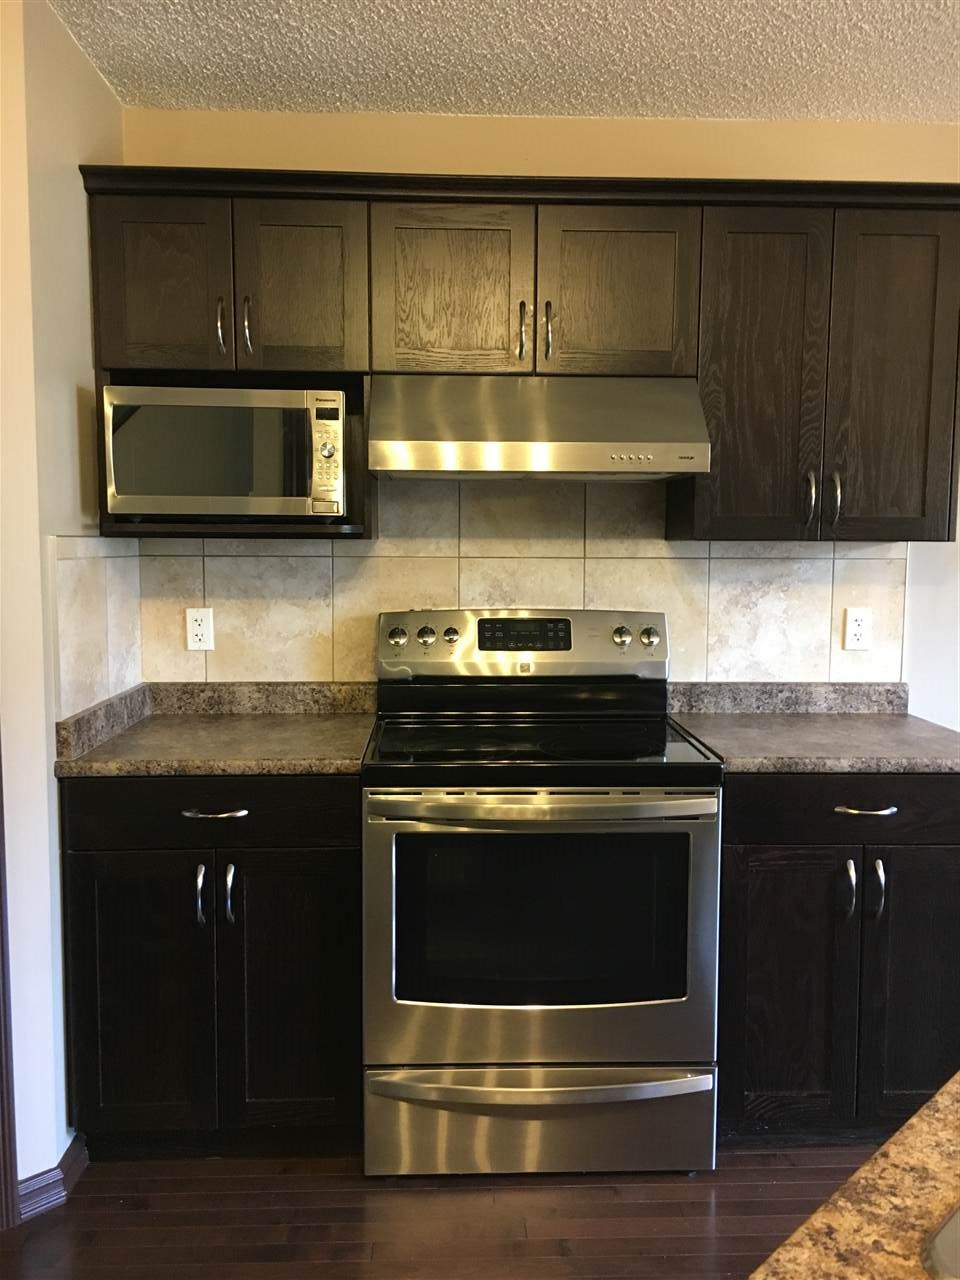 Kitchen Photo Showing Beautiful Dark Wood Cabinets;the Stainless Steel Stove/Ceramic Top,Hood Fan & Microwave. Note the Attractive Ceramic Backsplash & Arborite Counter Tops. BI Dishwasher & Fridge (water/ice Dispenser not shown